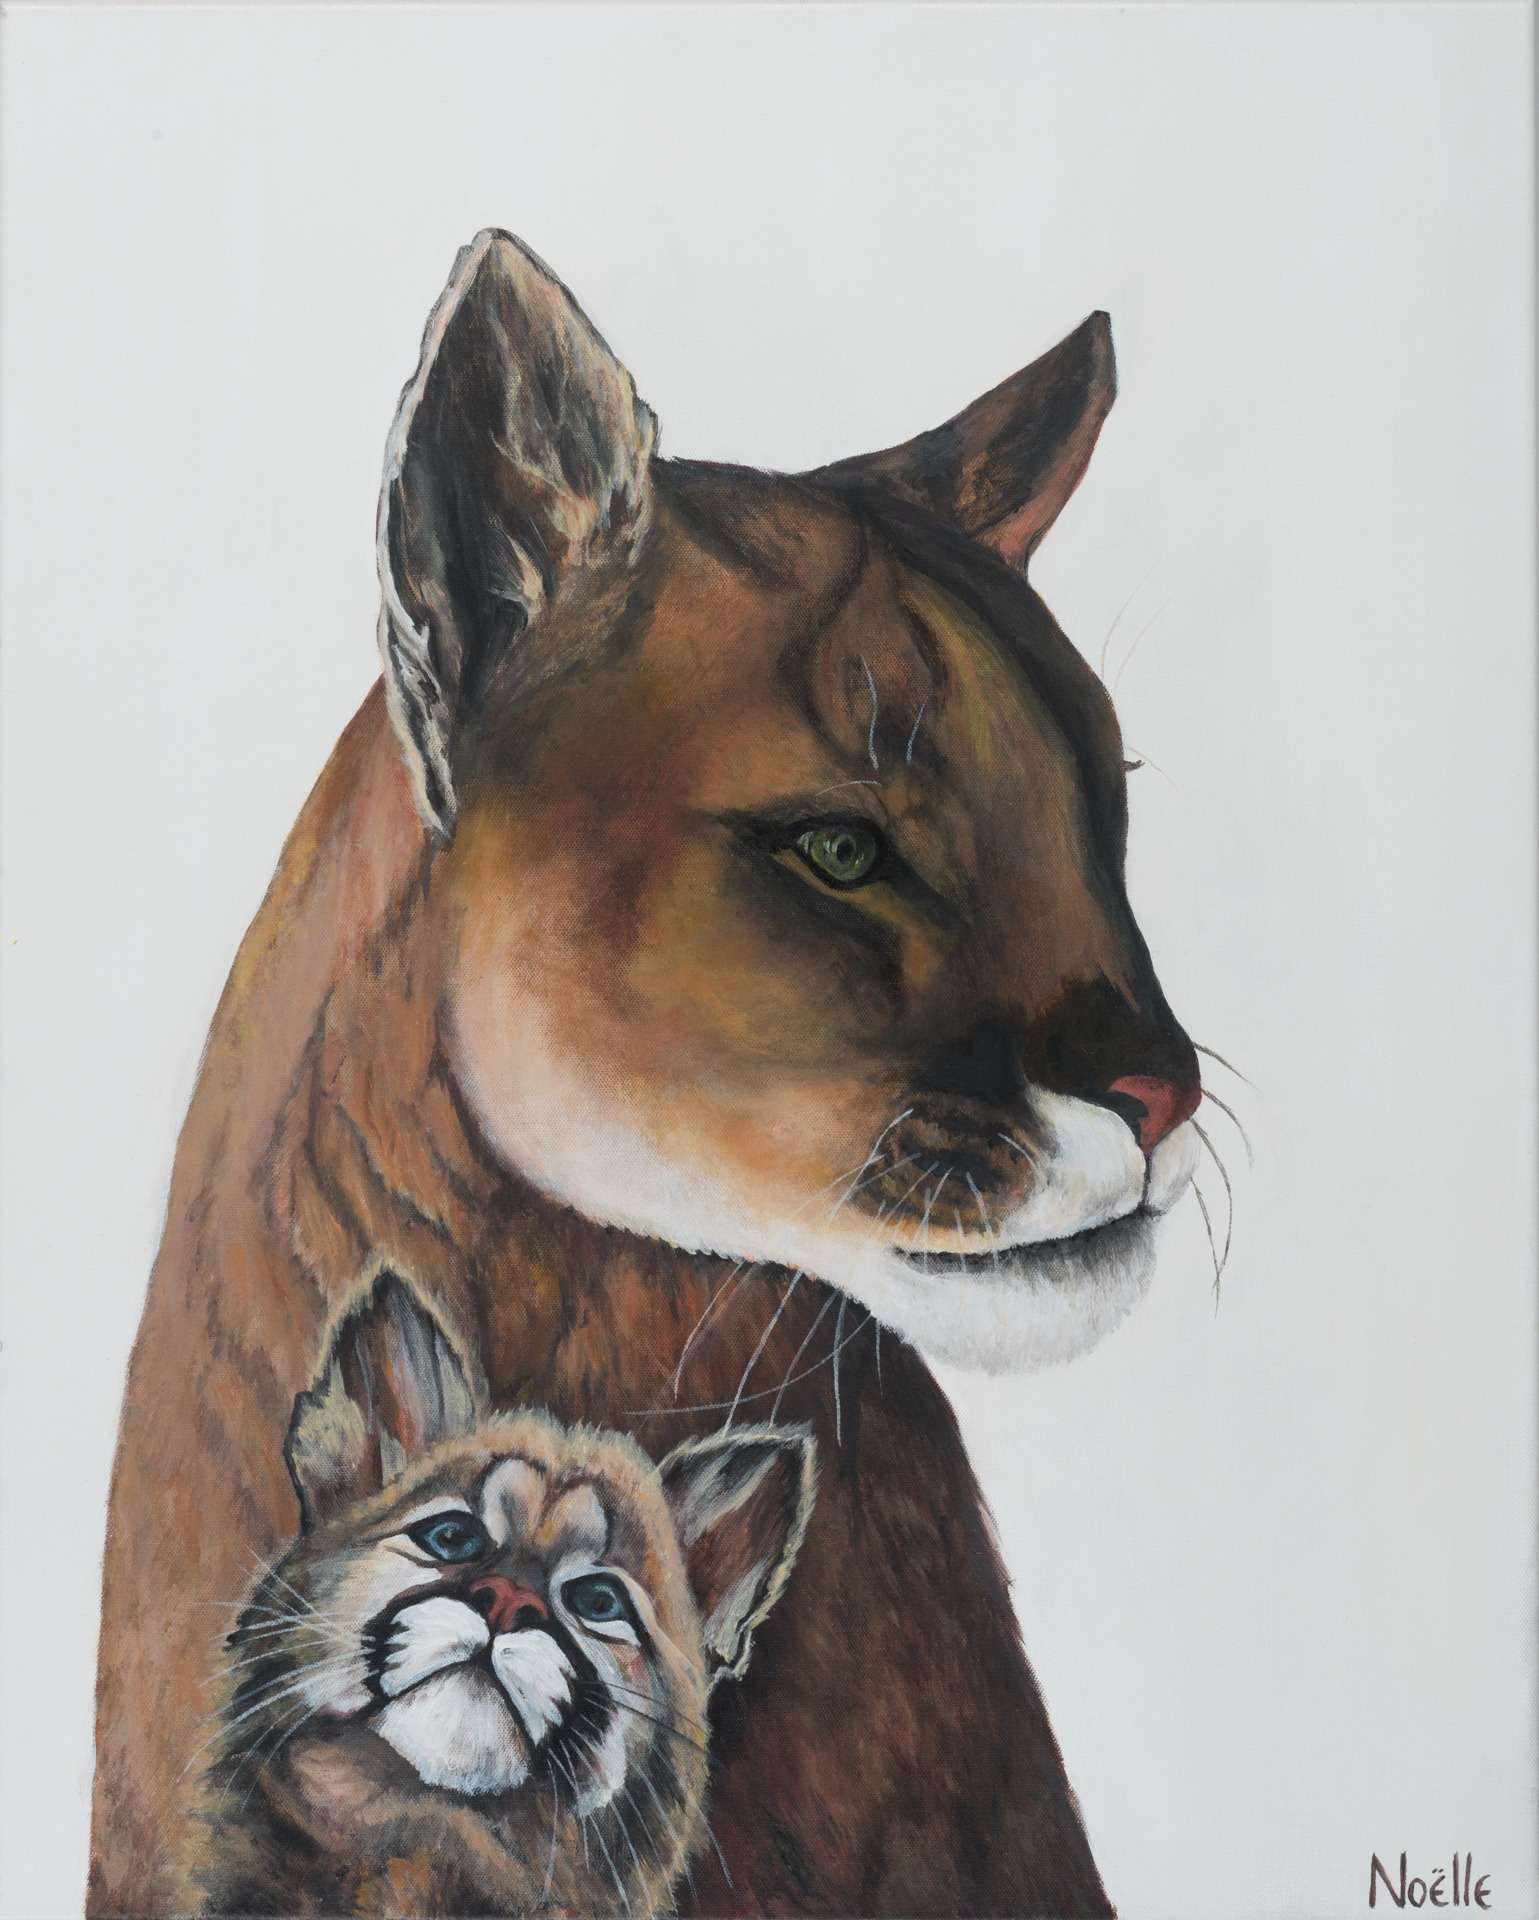 Noelle mccarthy florida panther and cub acrylic 24x30 1 000.00 kb1ooa